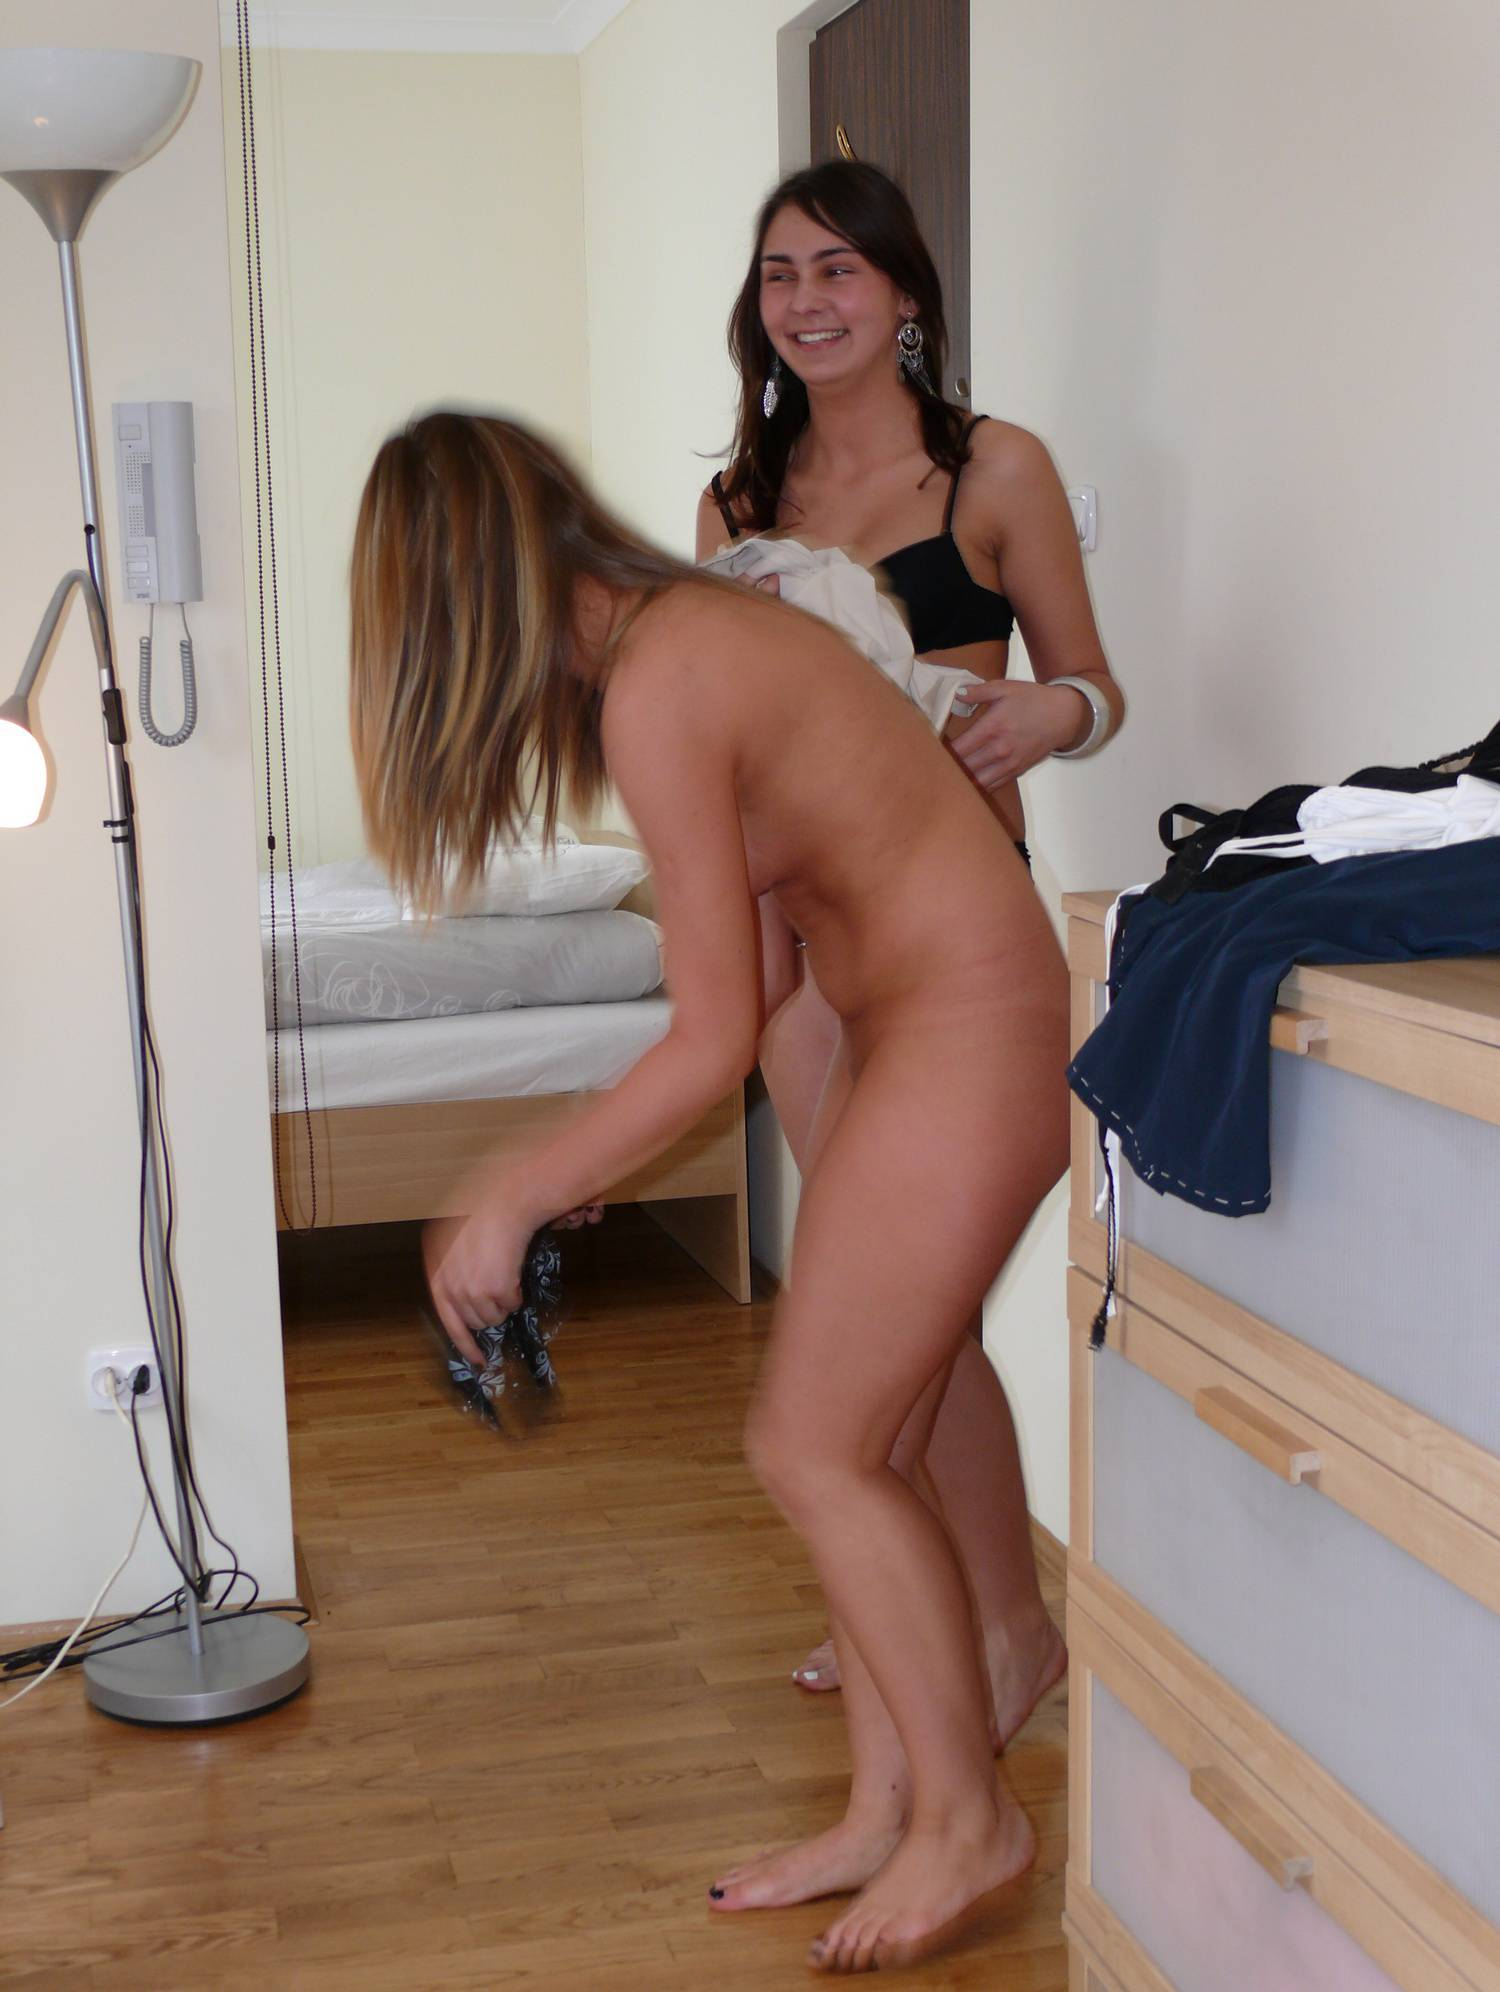 Nudist Pictures Naturist Sewing Girls - 2